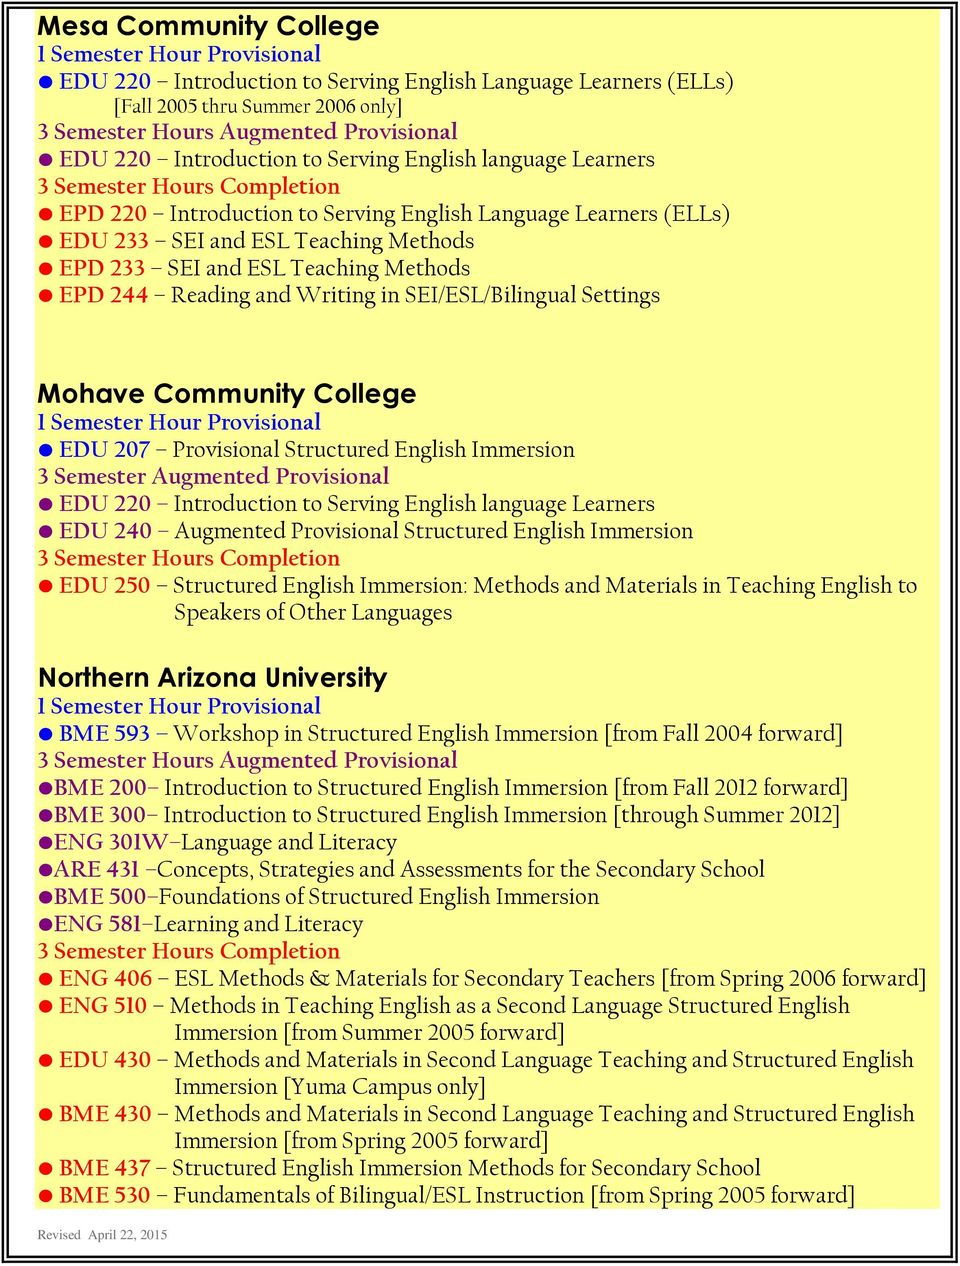 Community College EDU 207 Provisional Structured English Immersion 3 Semester Augmented Provisional EDU 220 Introduction to Serving English language Learners EDU 240 Augmented Provisional Structured